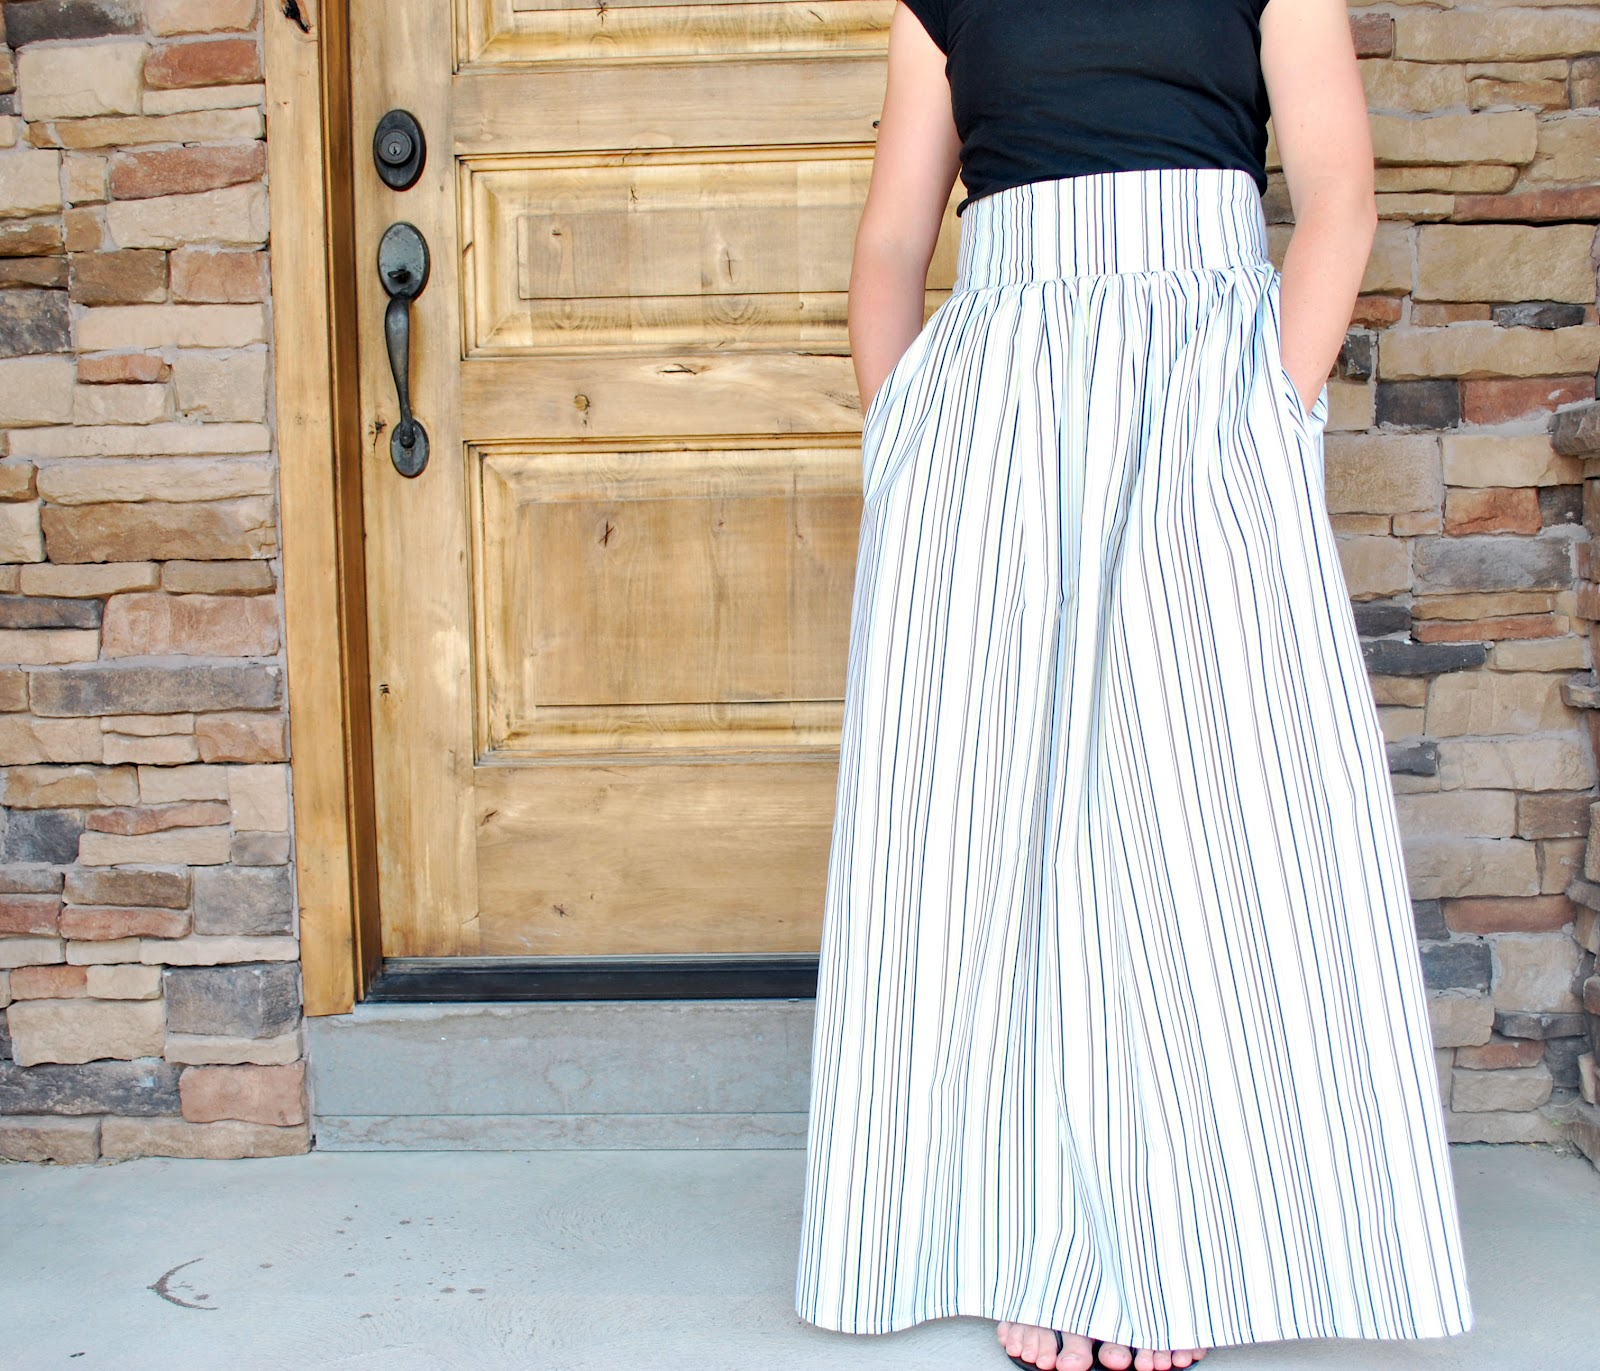 To acquire Waisted high maxi skirt diy picture trends